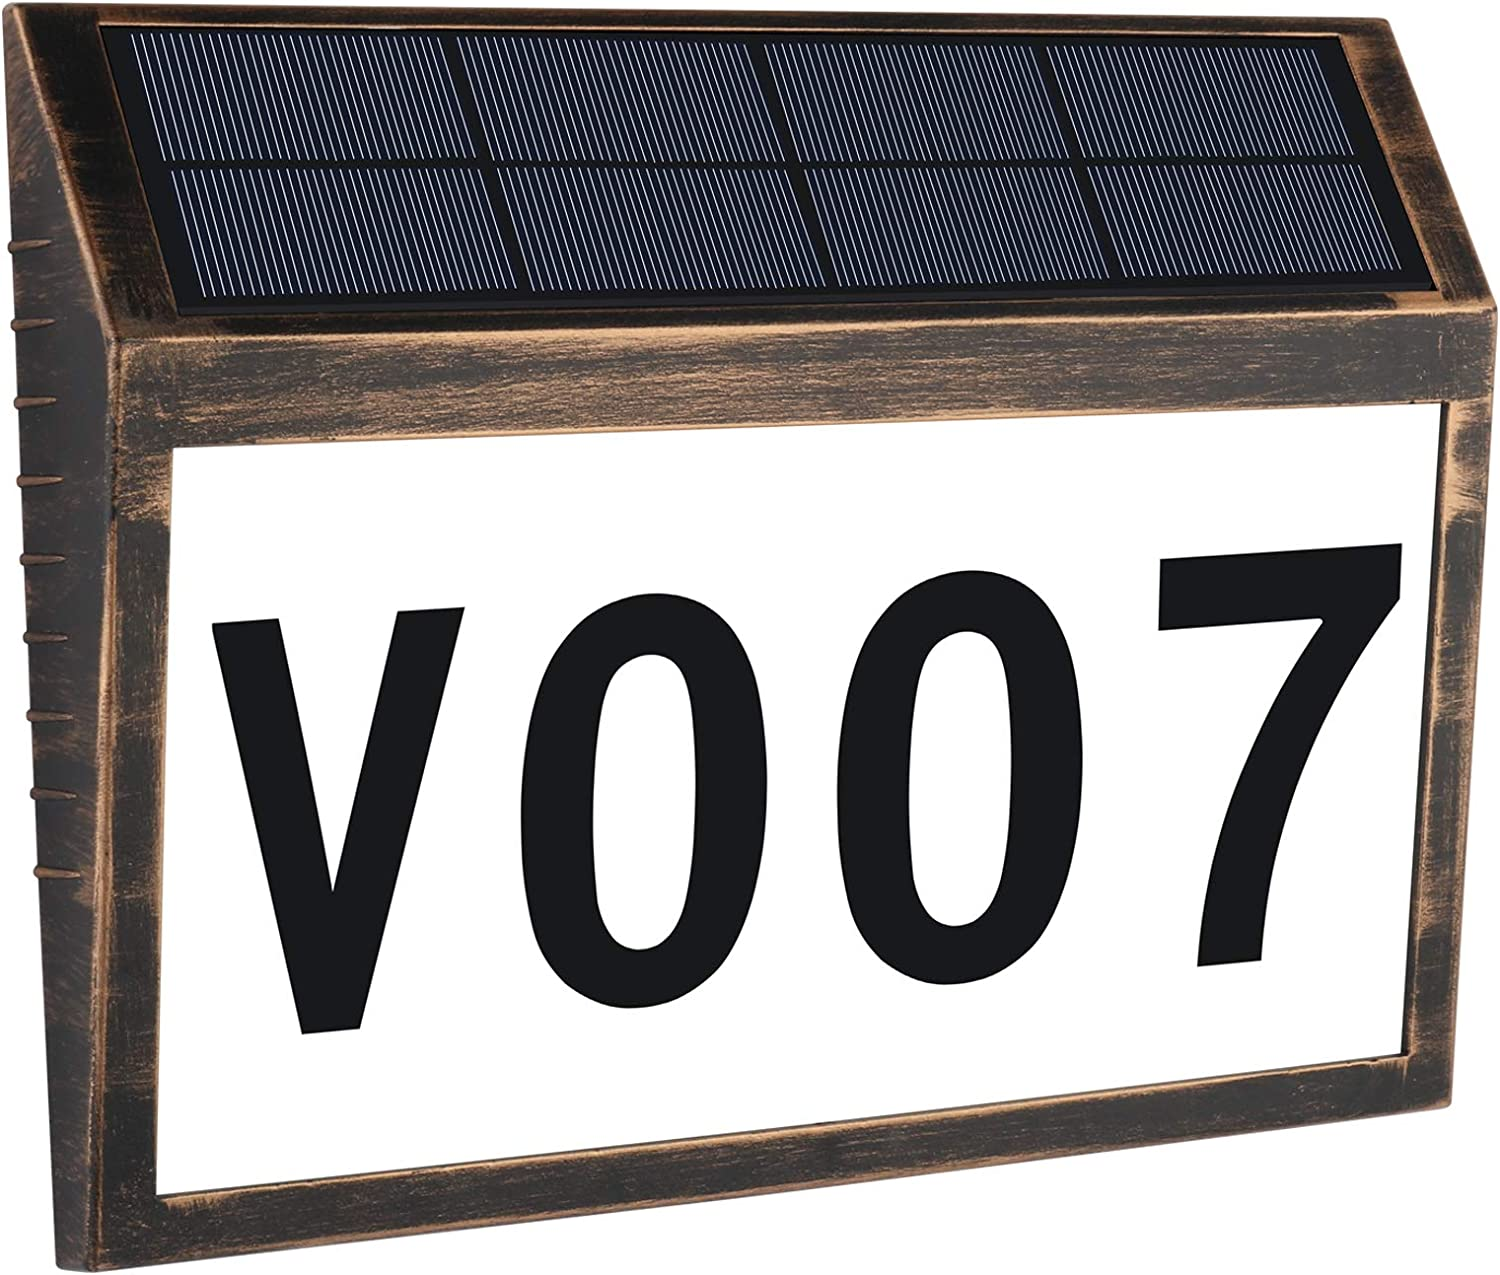 AFLIFLI House Numbers Plaque, Solar Powered LED Light Address Number Signs, IP44 Waterproof for Home Yard Outdoor Street Outside Wall, Packed with 3 Sets Numbers (0-9) & 26 Letters Self Stickers-Bronze